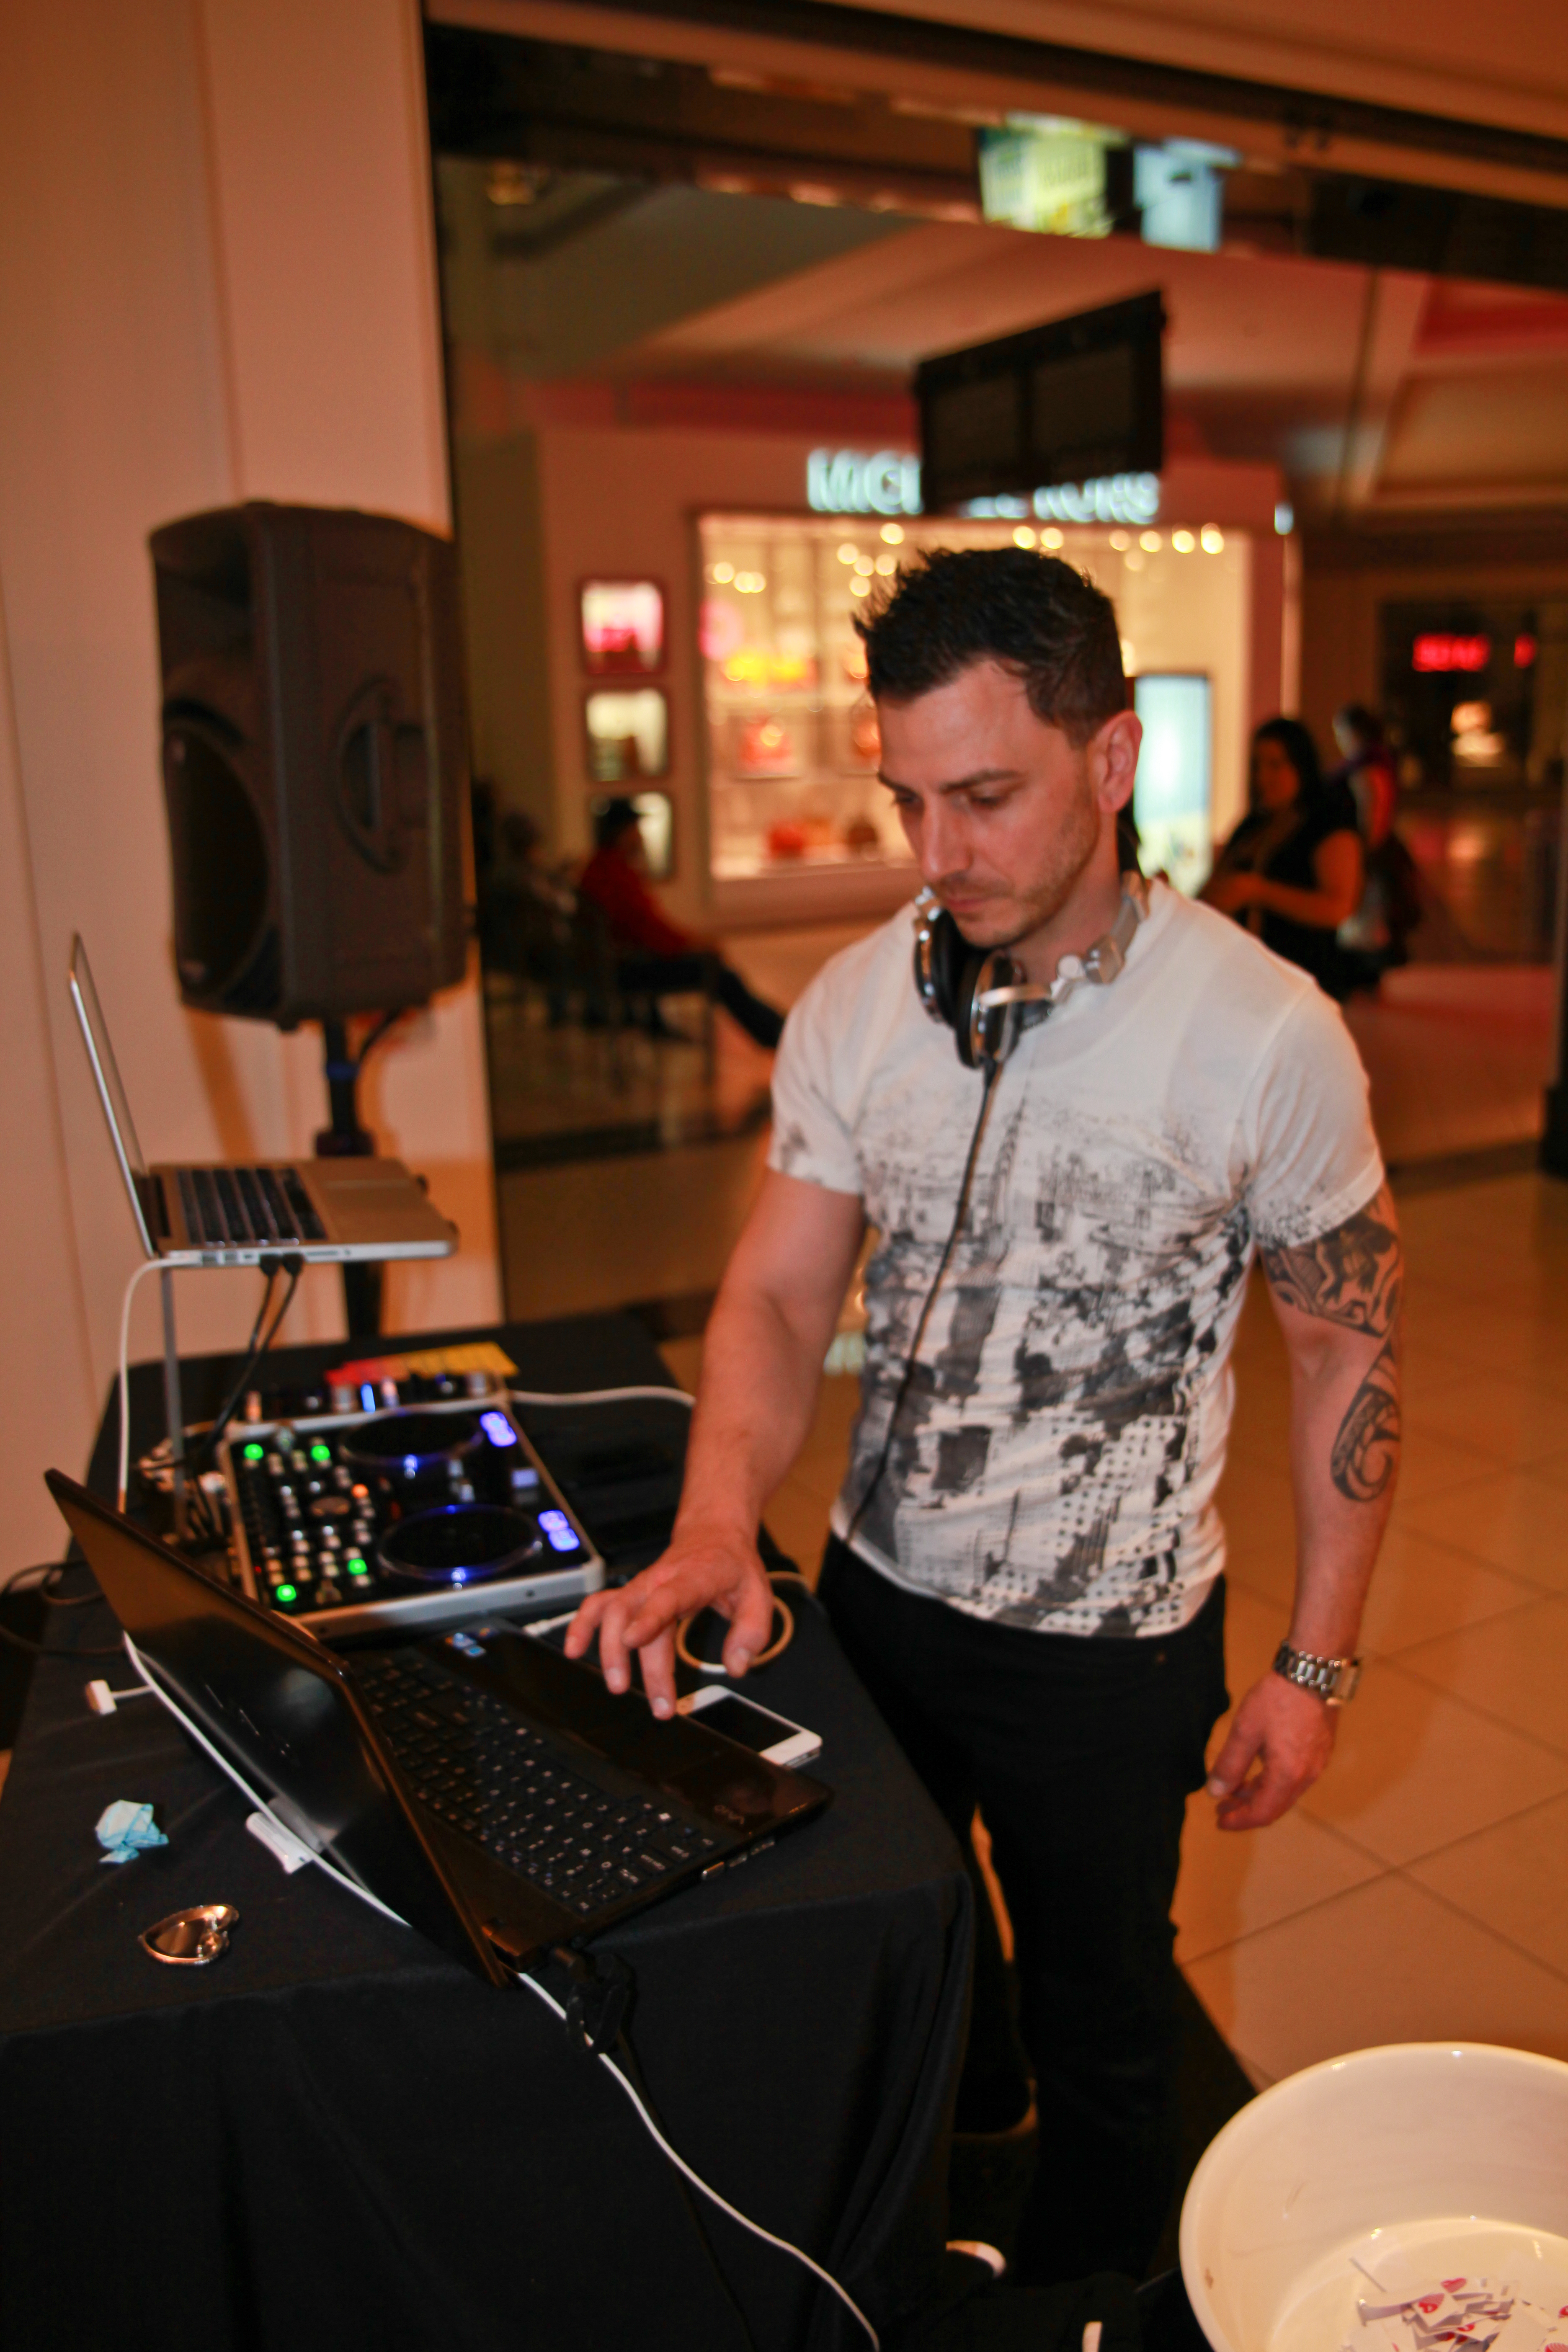 Spinning at Victoria's Secret